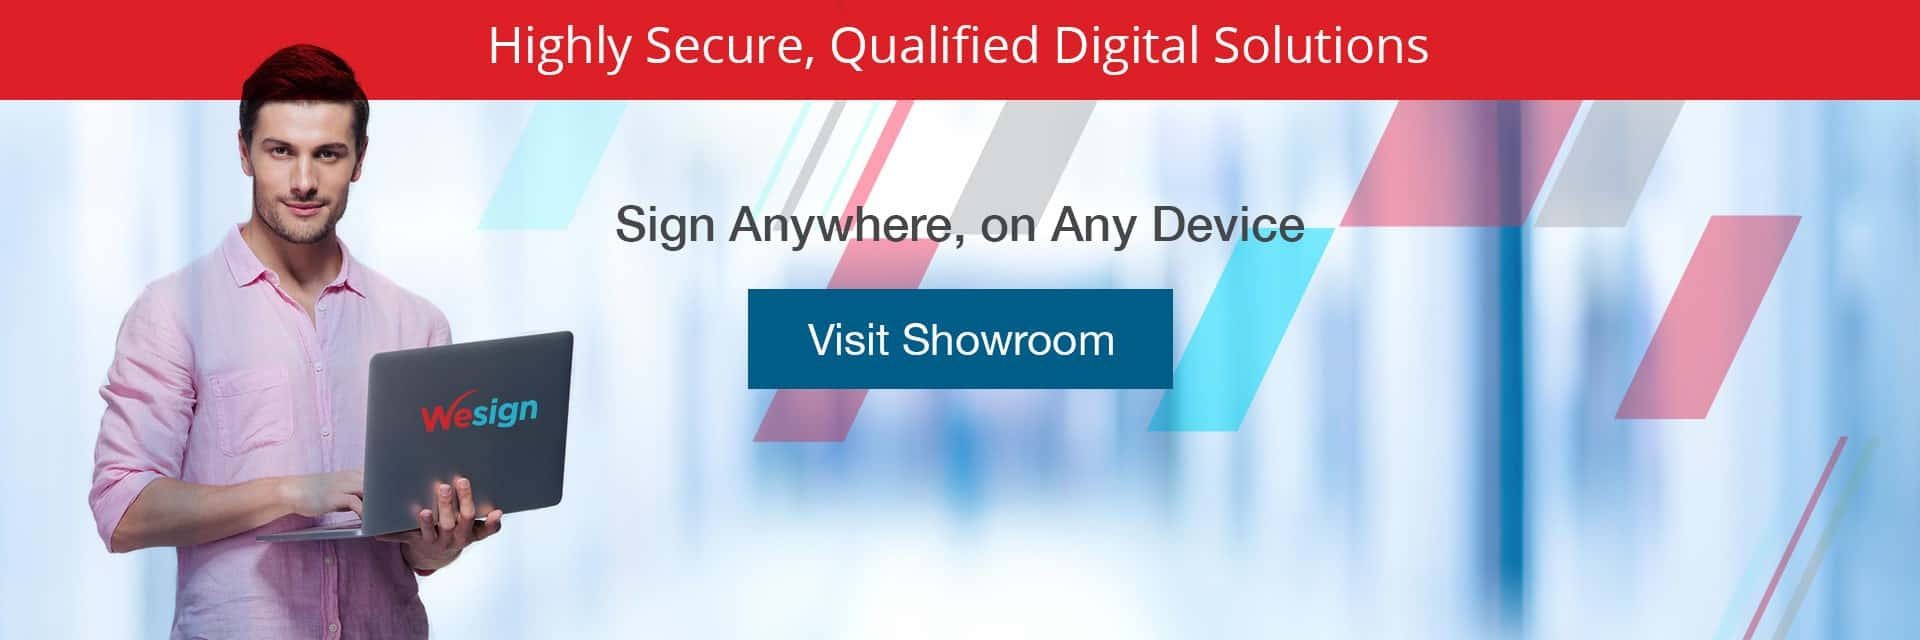 Advanced Digital signature solutions for any corporate need